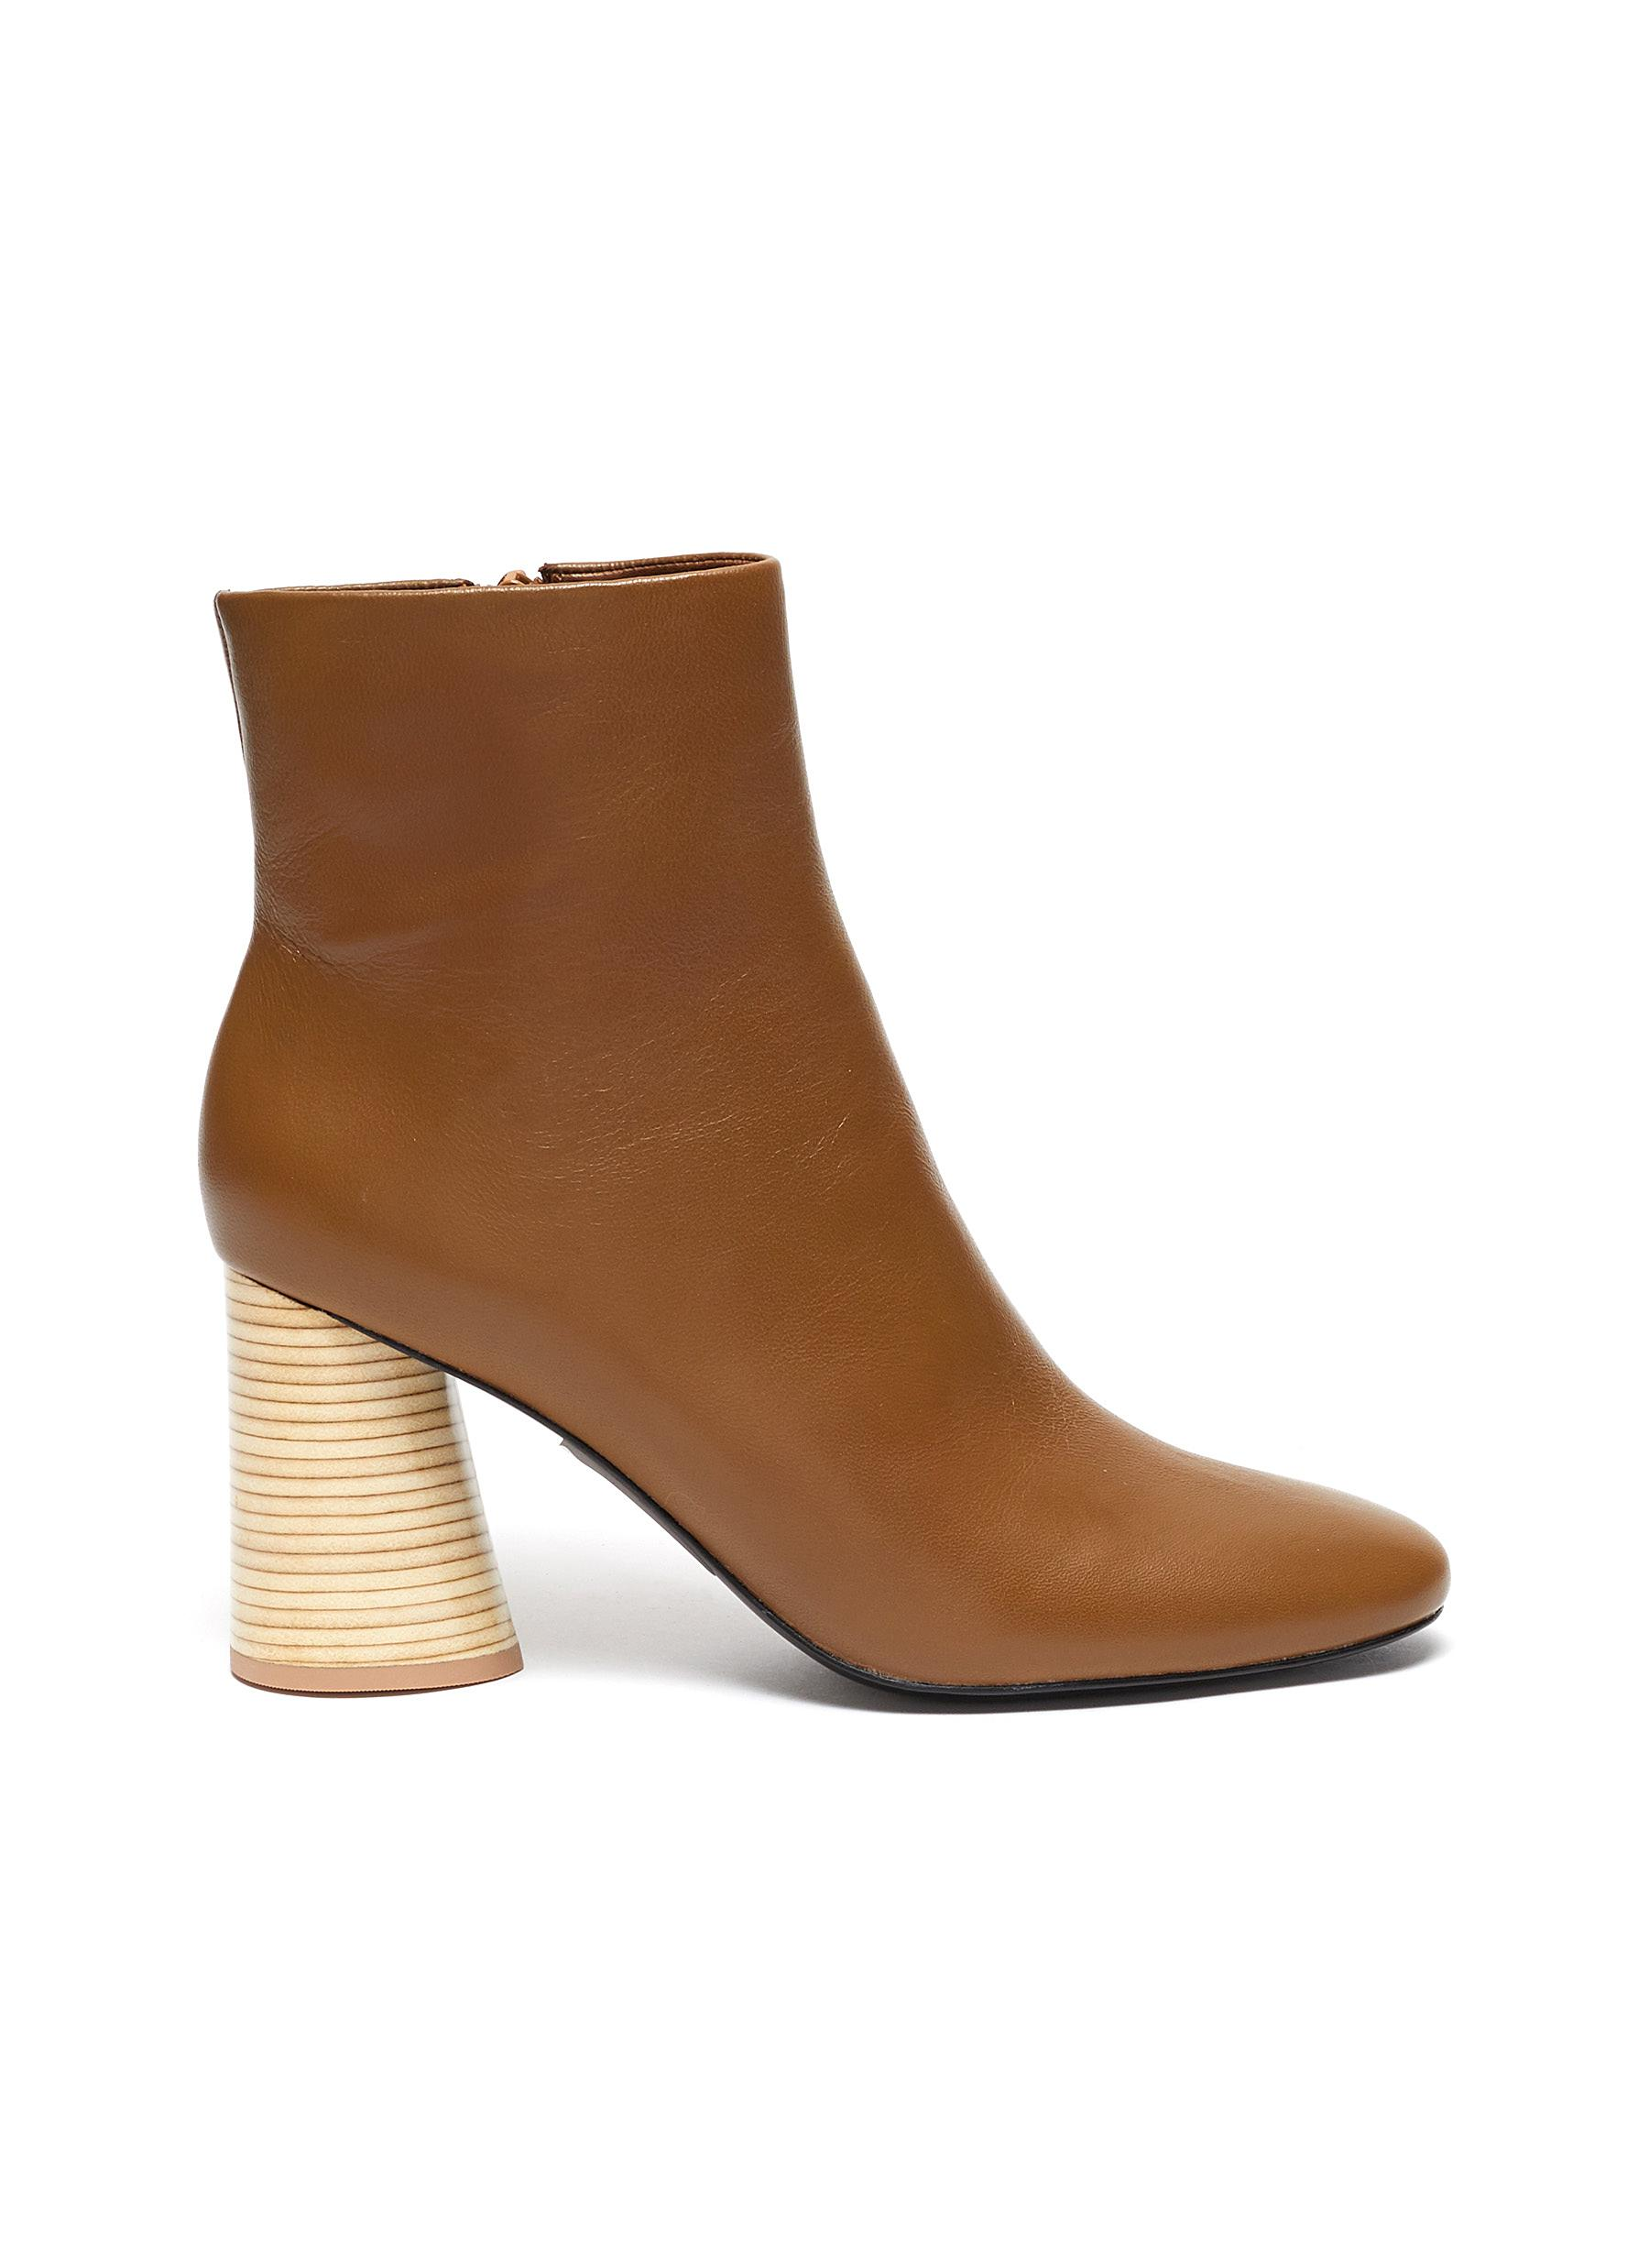 Tomara leather ankle boots by Mercedes Castillo